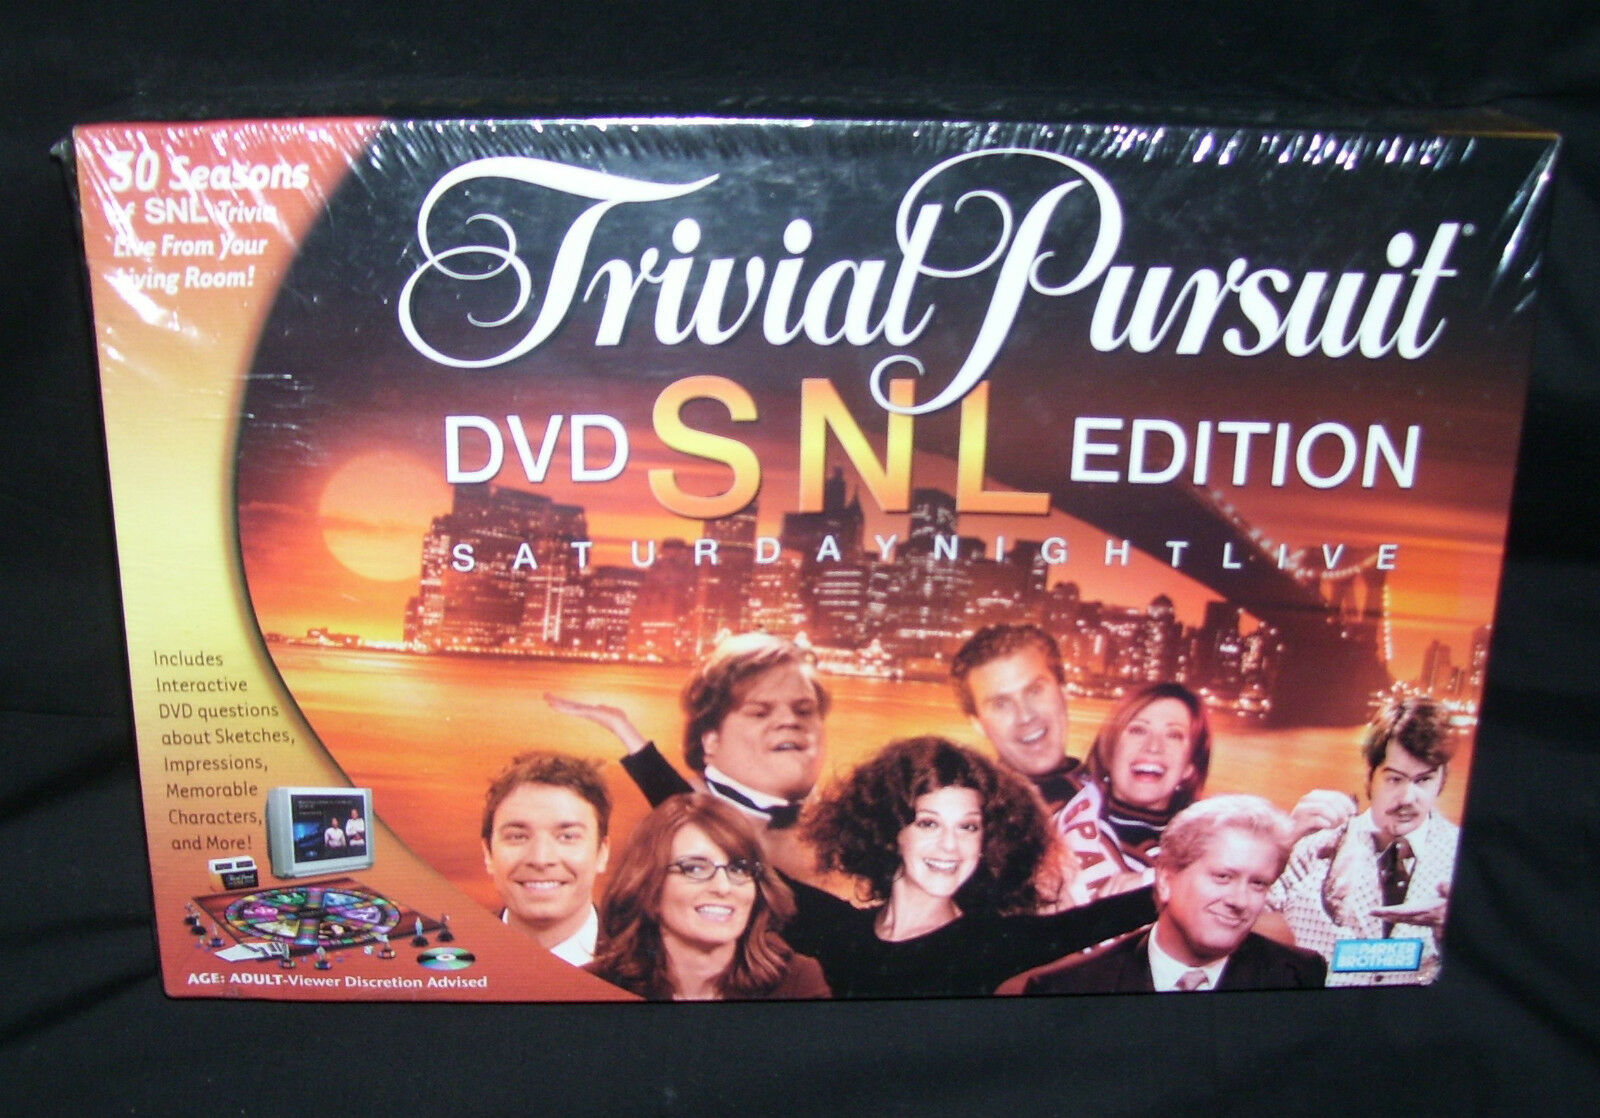 Saturday Night Live DVD Edition of TRIVIAL PURSUIThours of fun